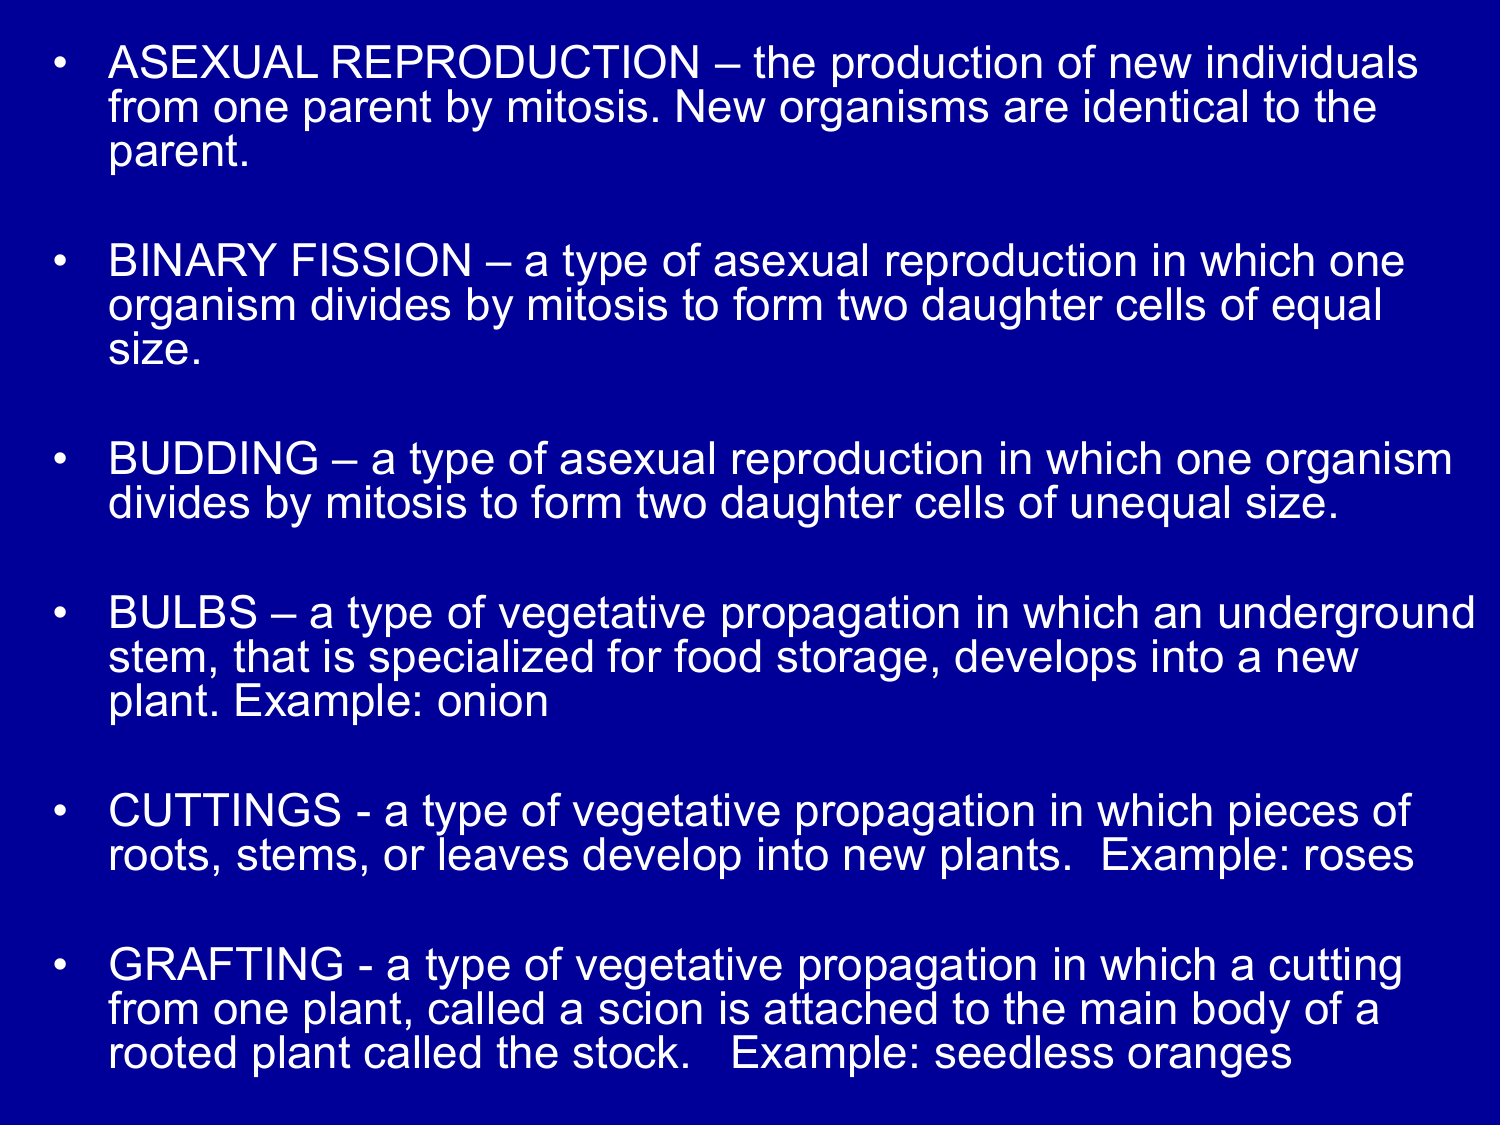 What are the 2 types of asexual reproduction